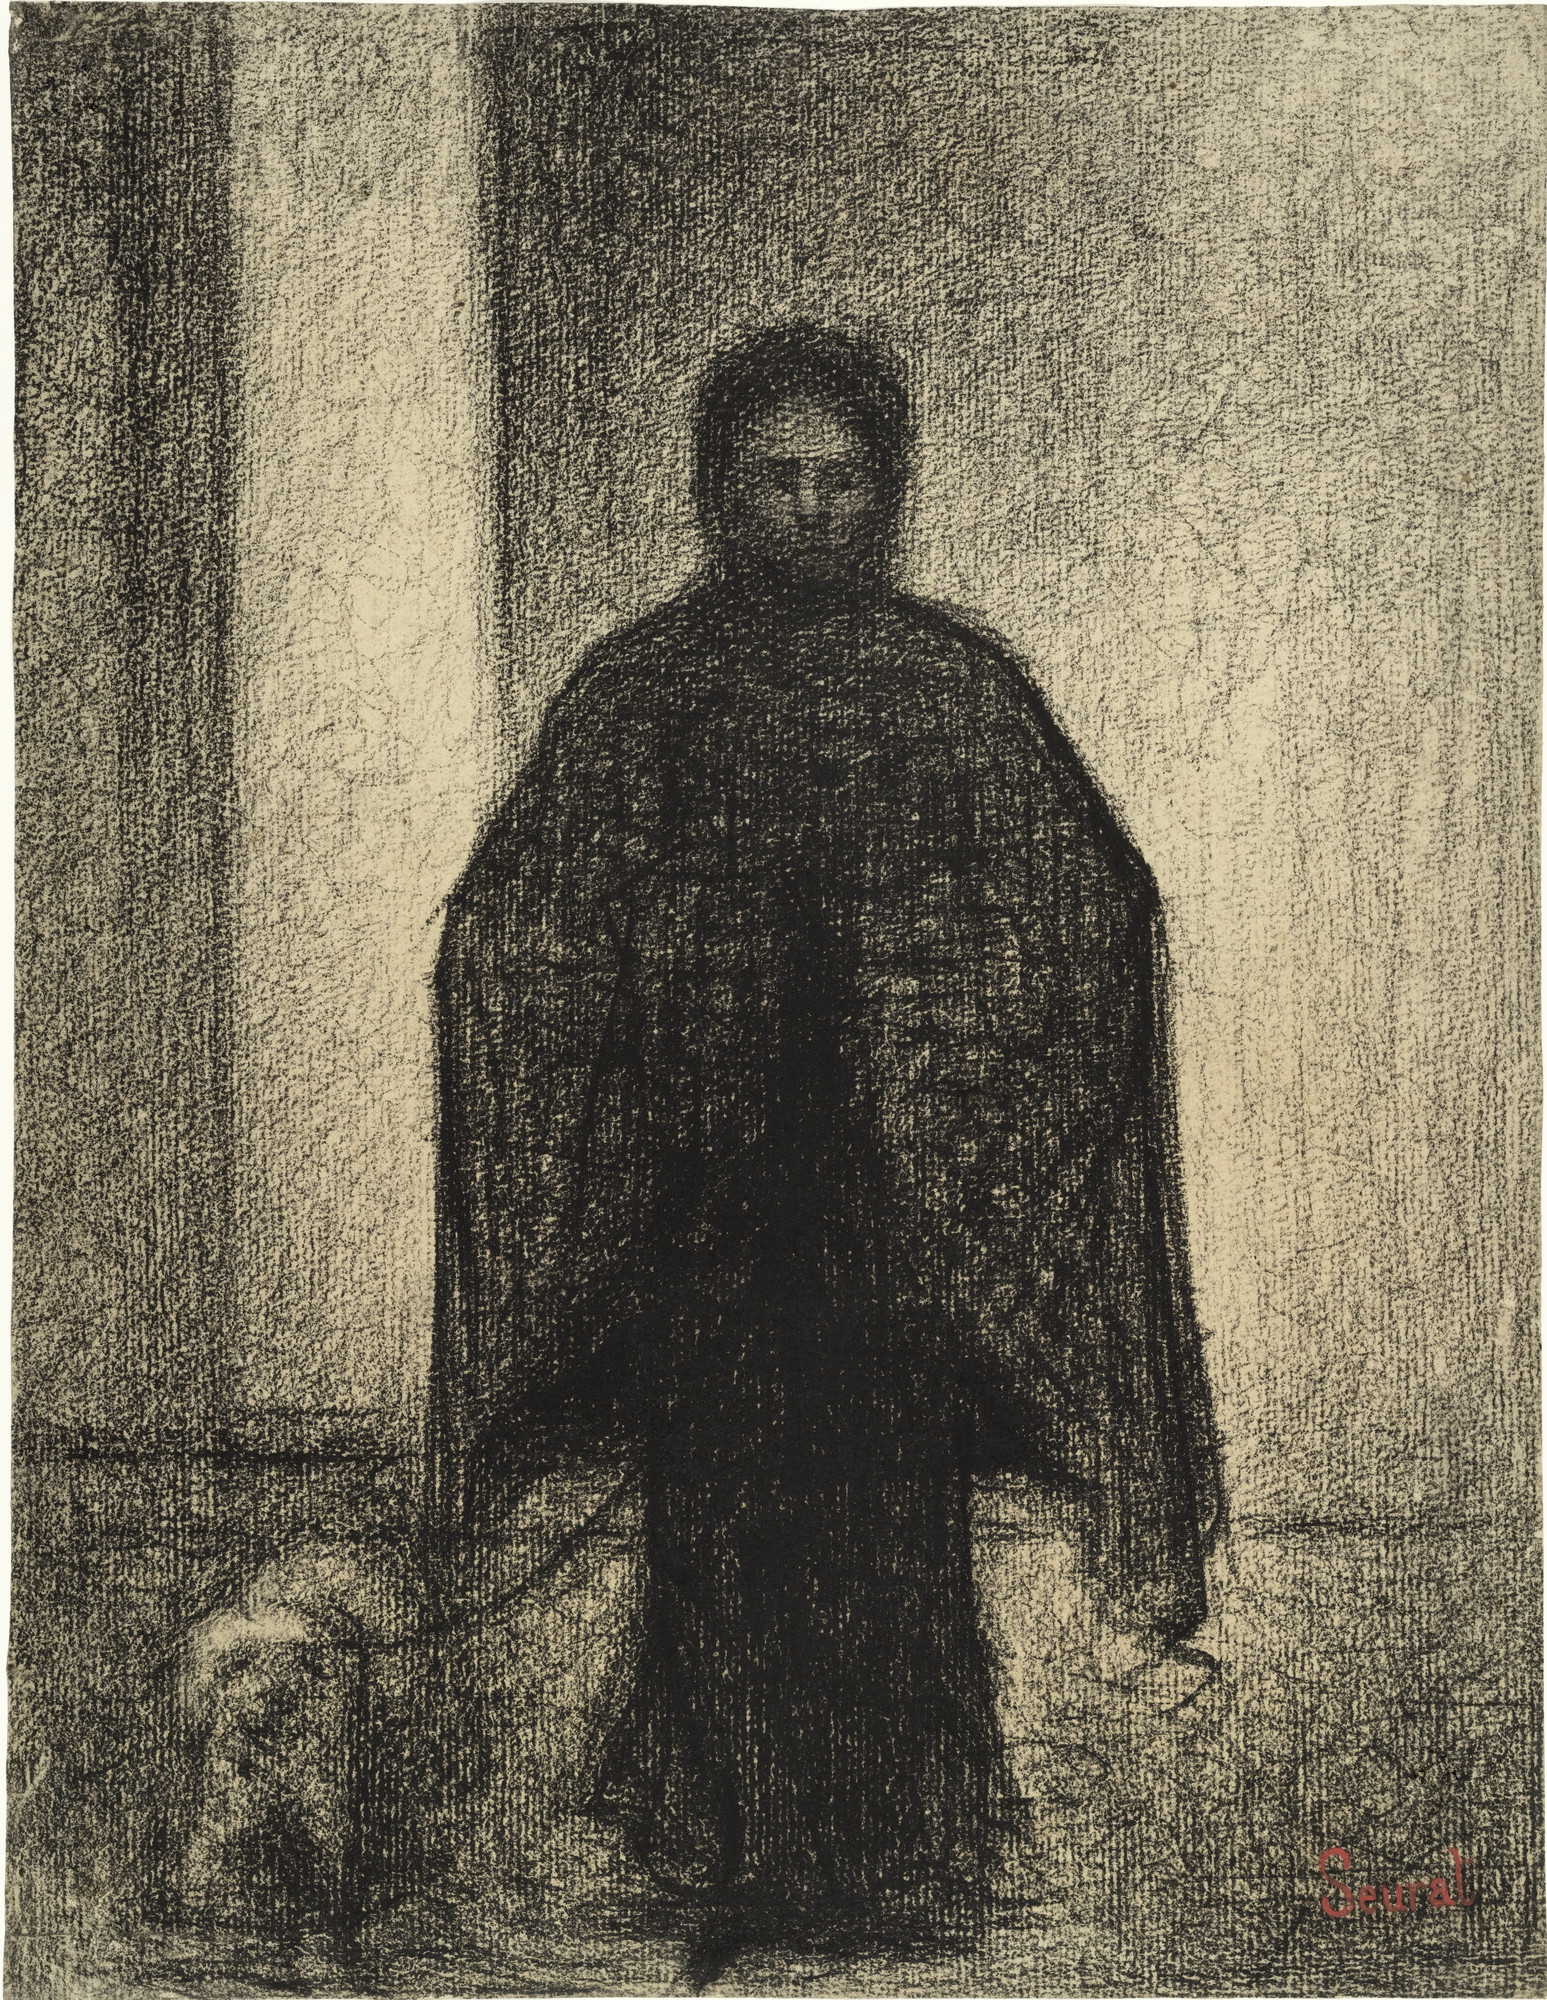 Georges-Pierre Seurat. Woman with a Dog (Femme avec chien). c. 1882–83